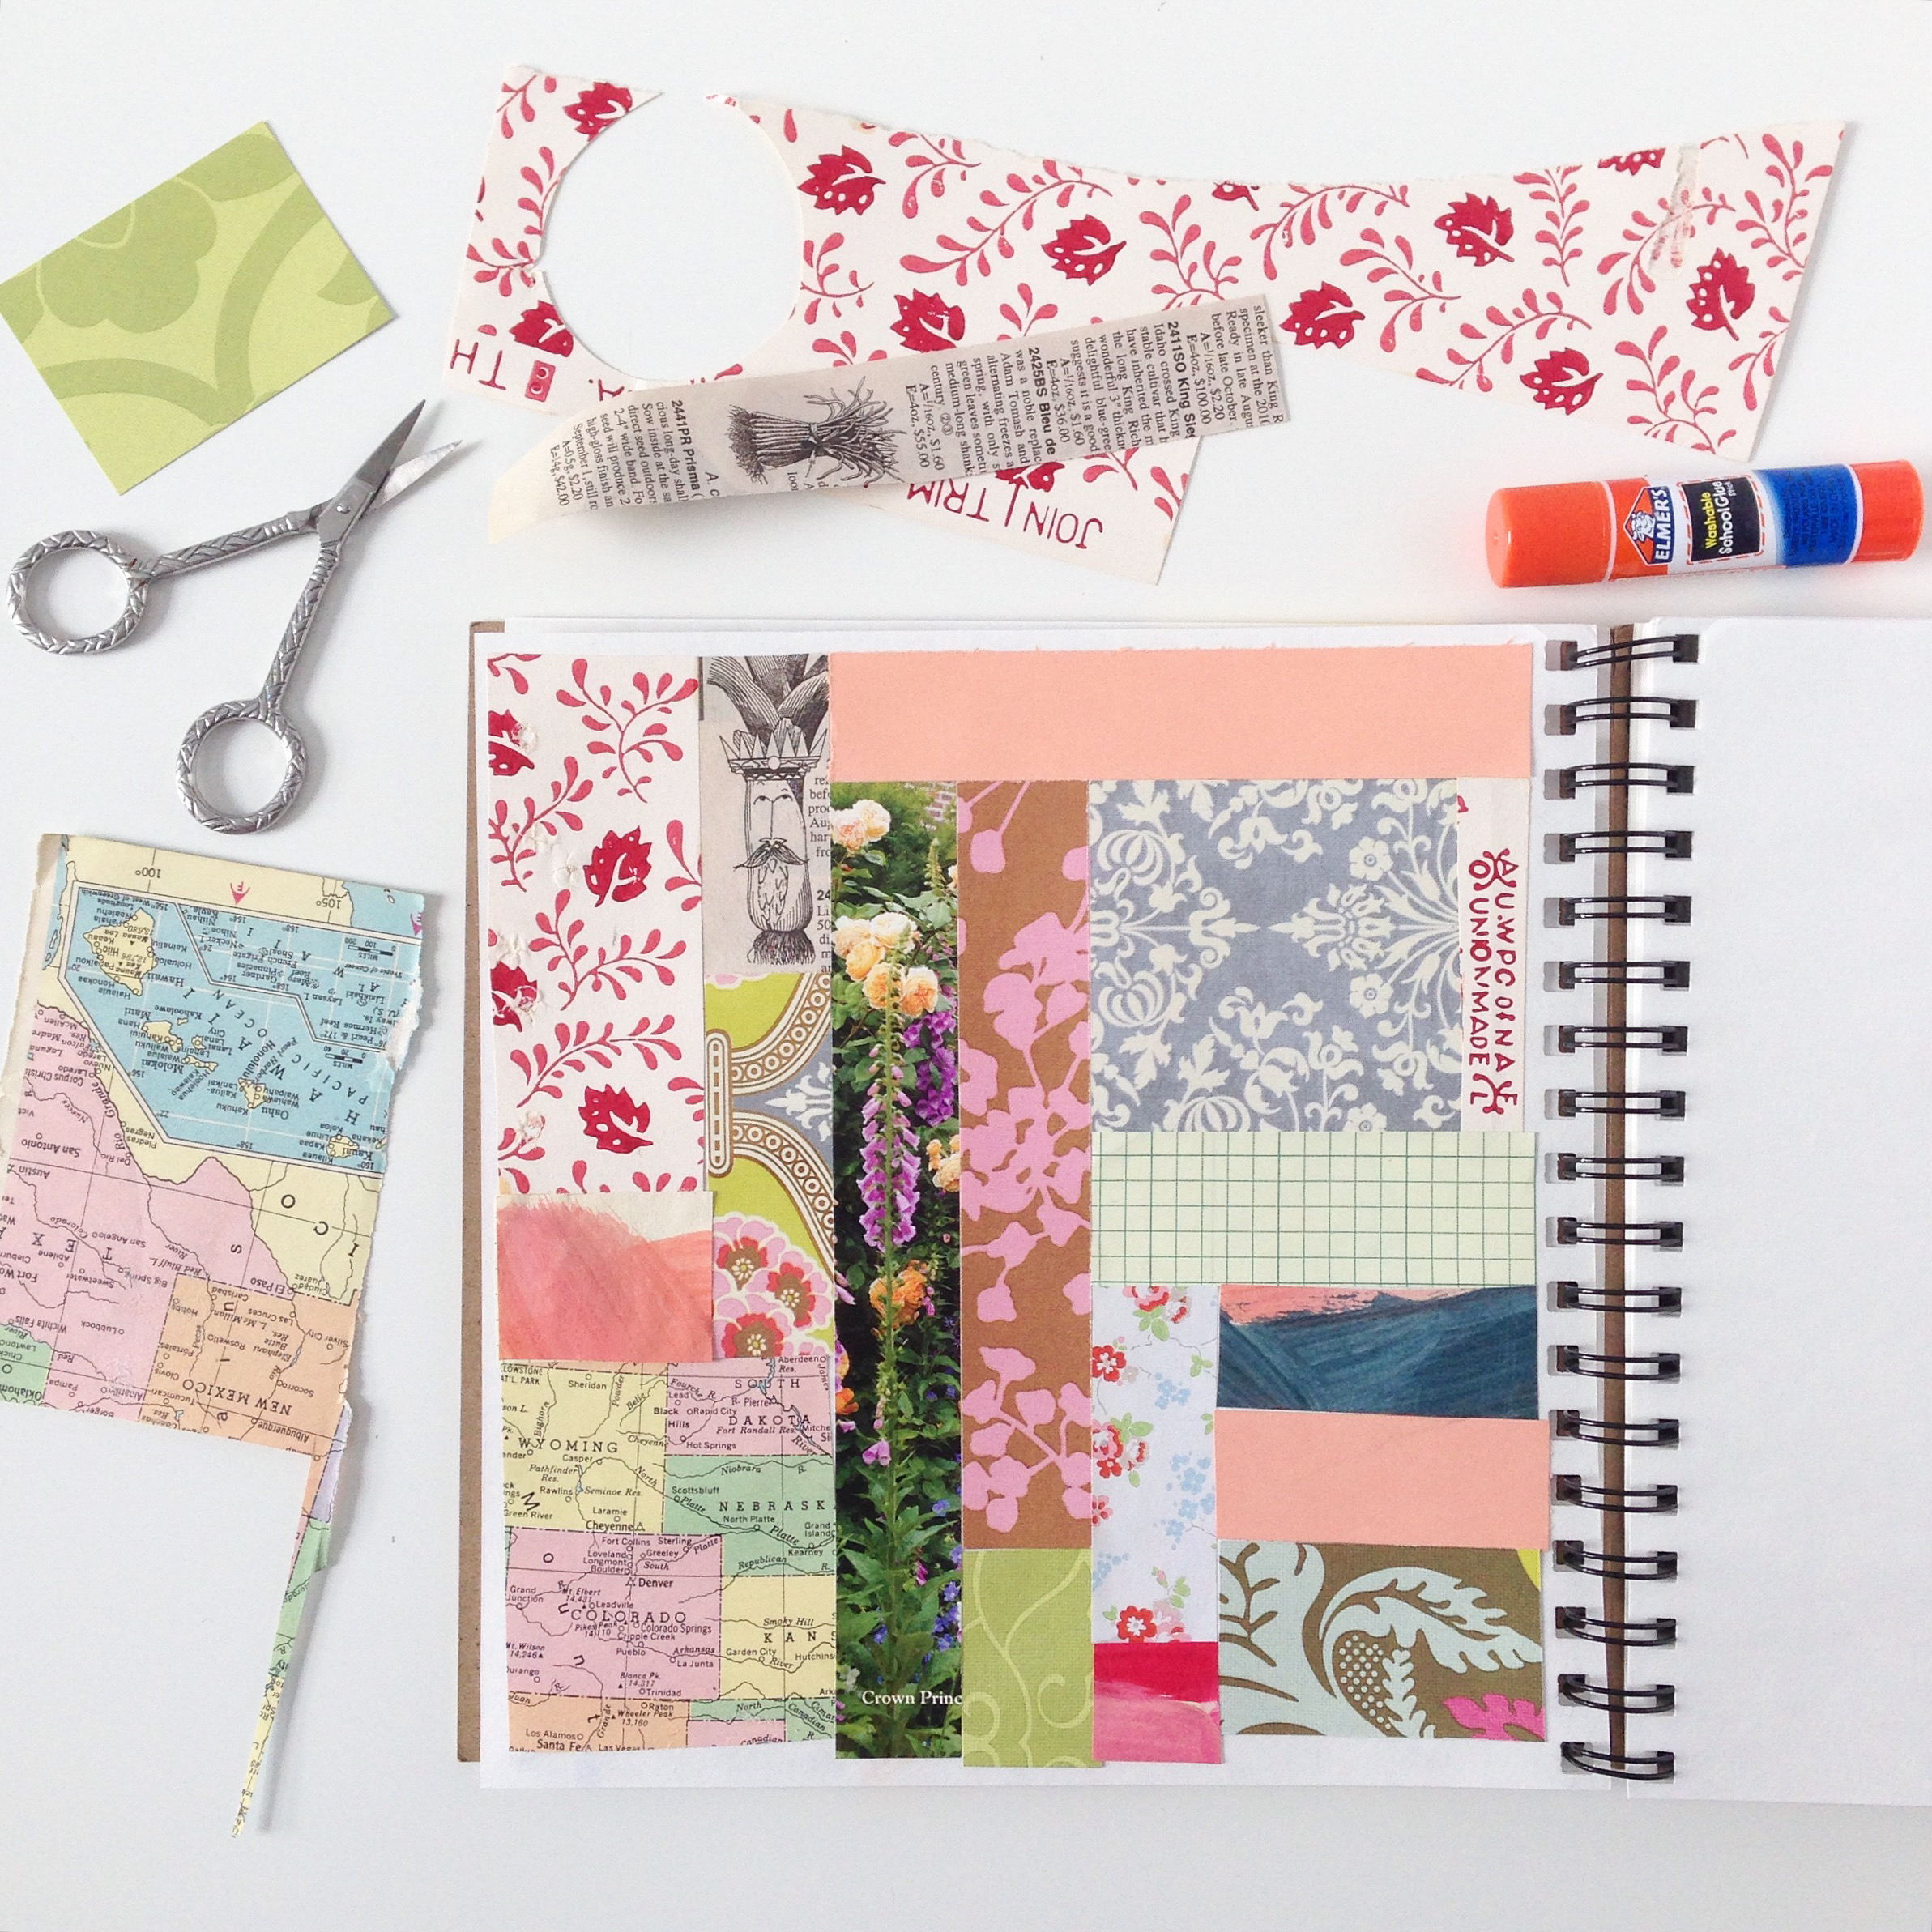 Patchwork Collage in Anne Butera's Sketchbook